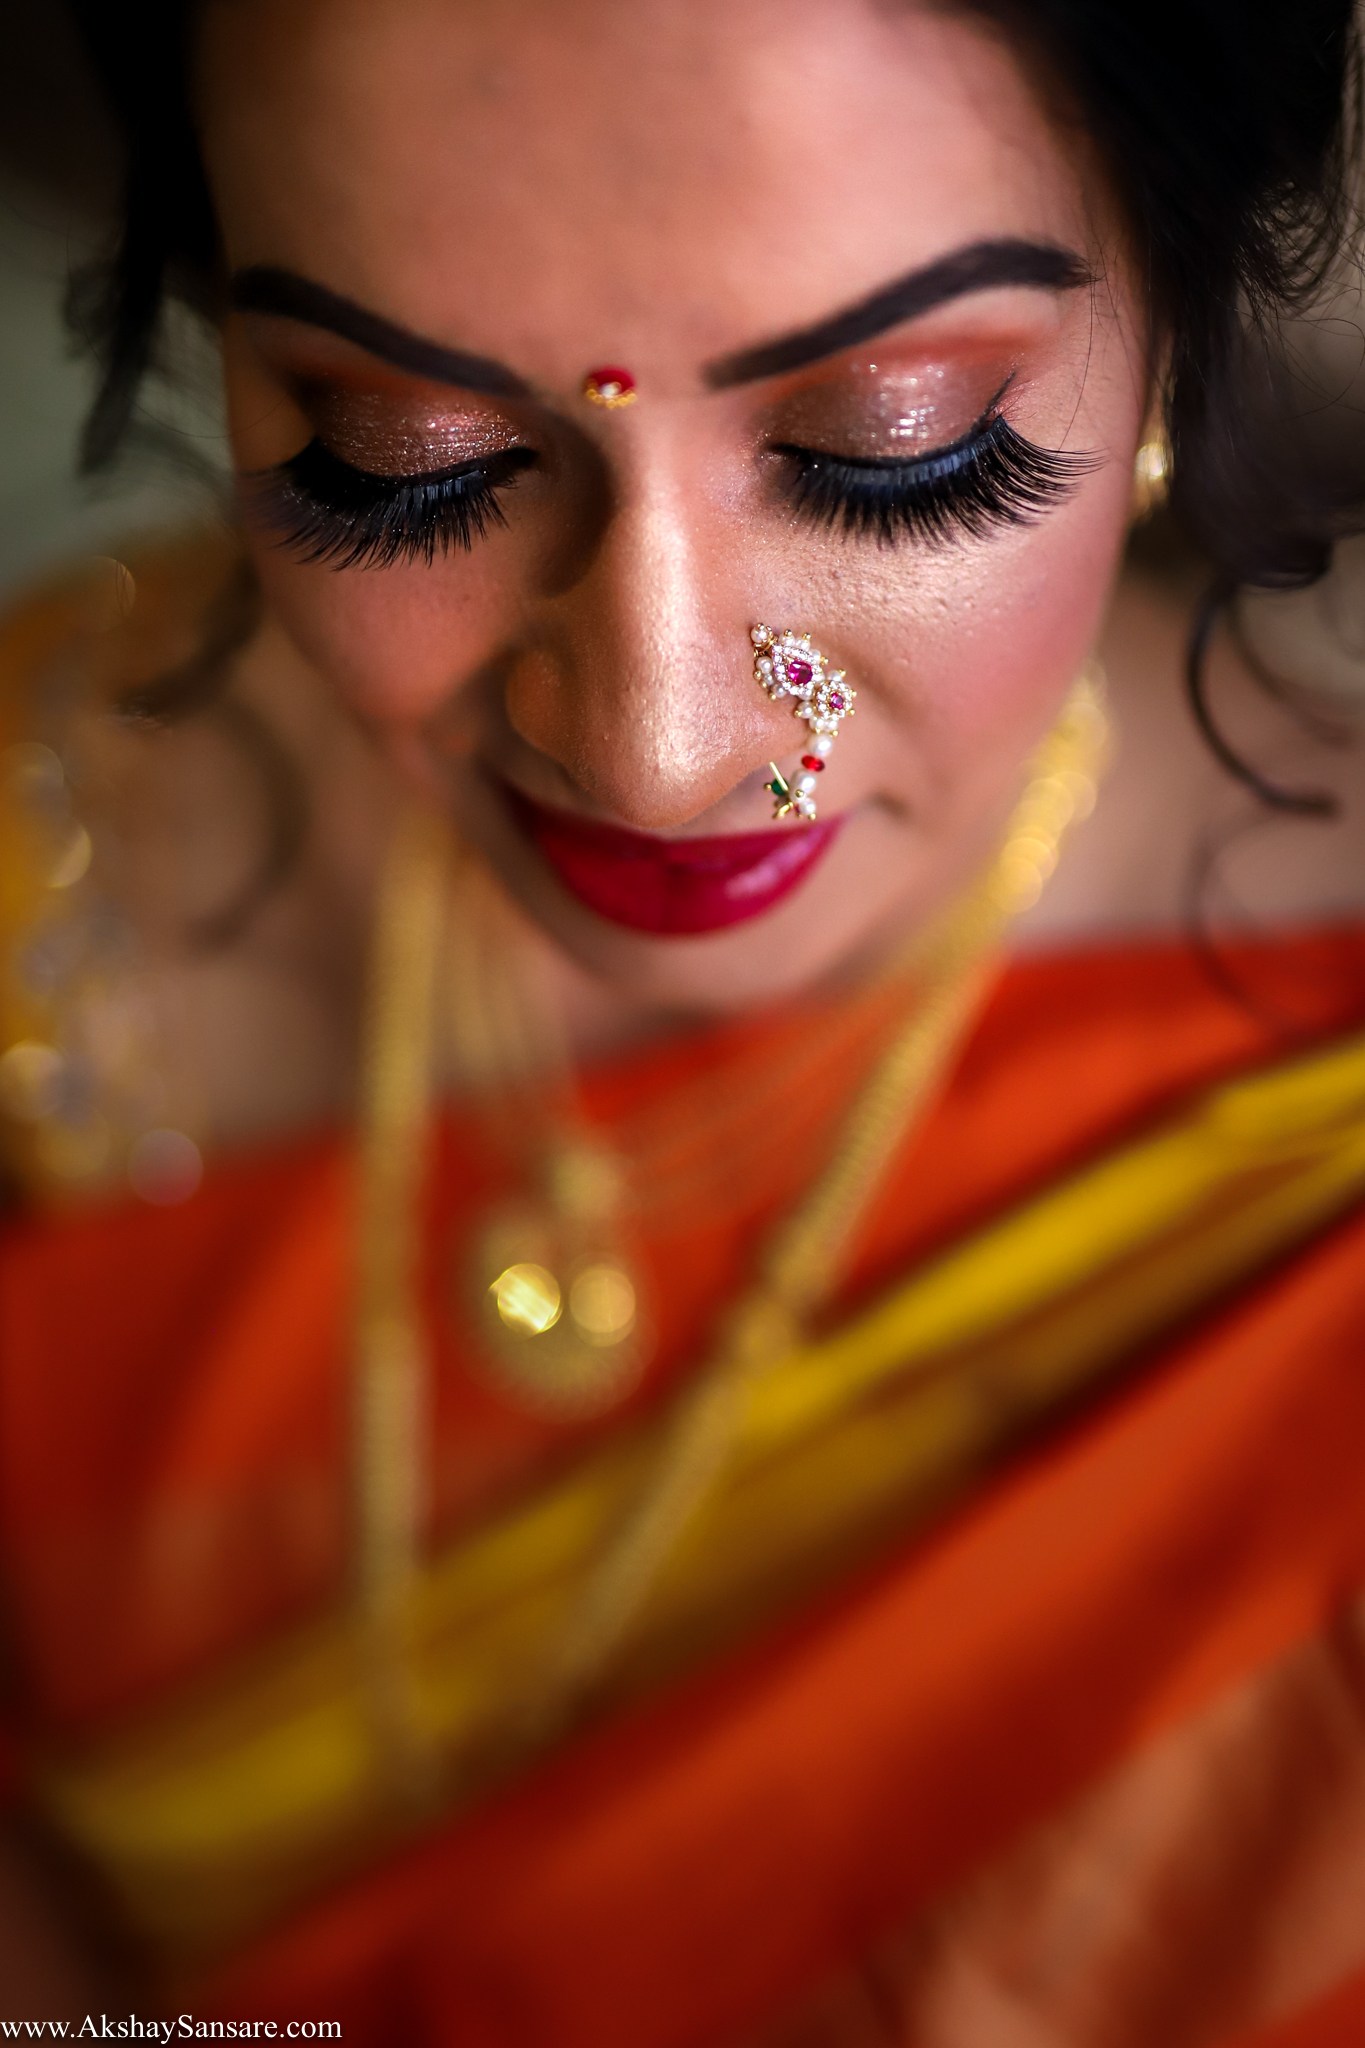 Nupur & Rohan wedding Akshay Sansare Photography best wedding photographer in mumbai India Candid(31).jpg